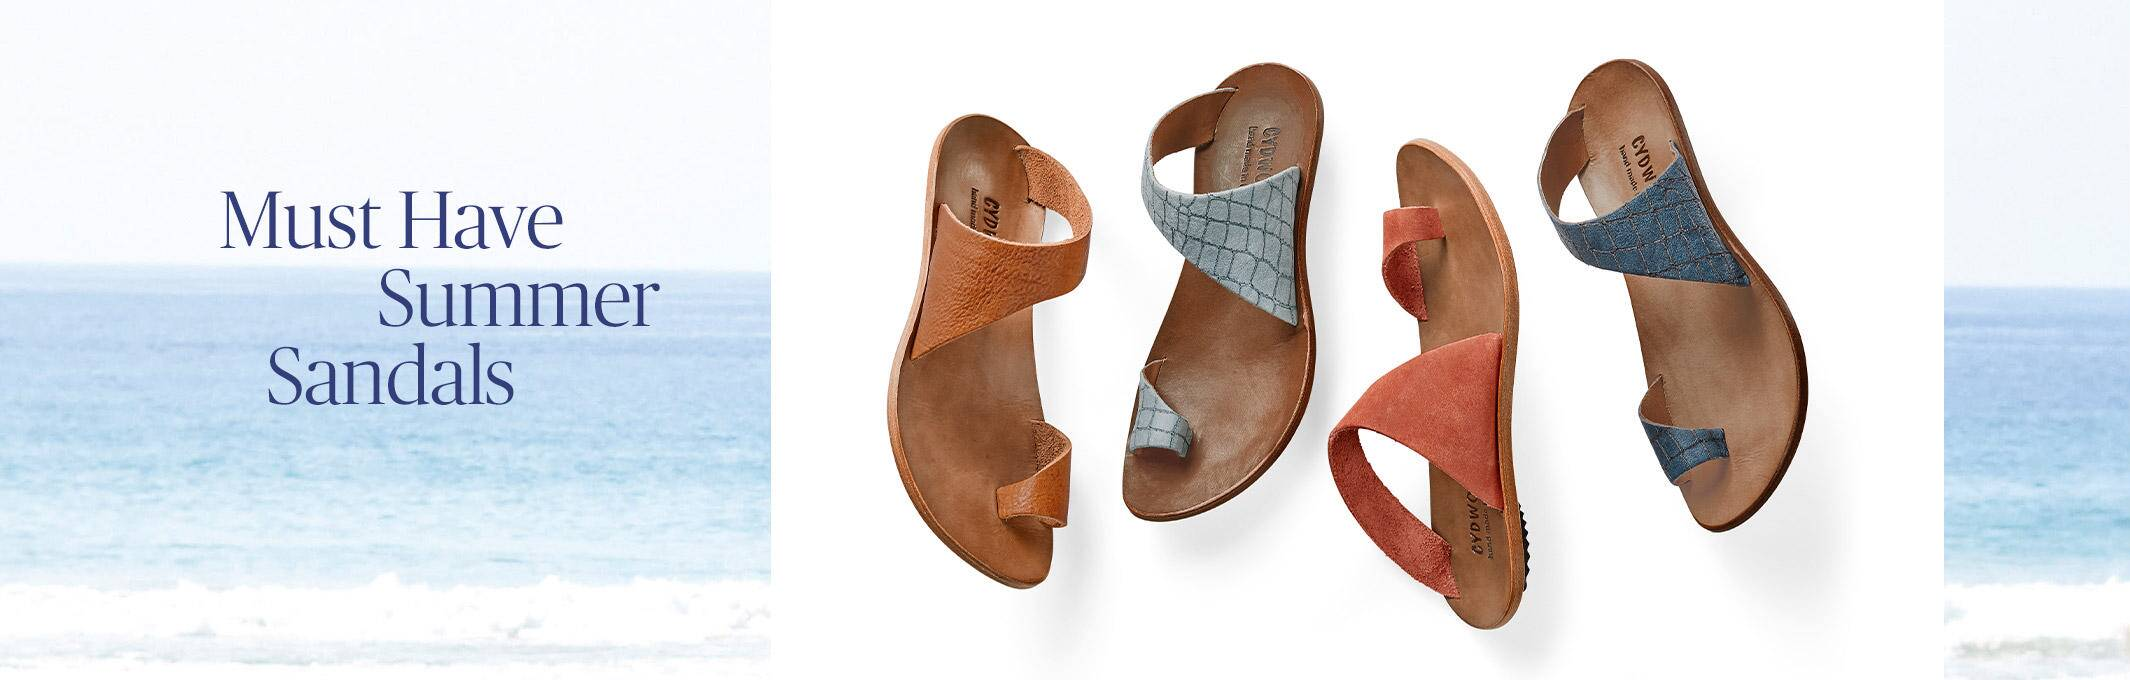 Must Have Summer Sandals